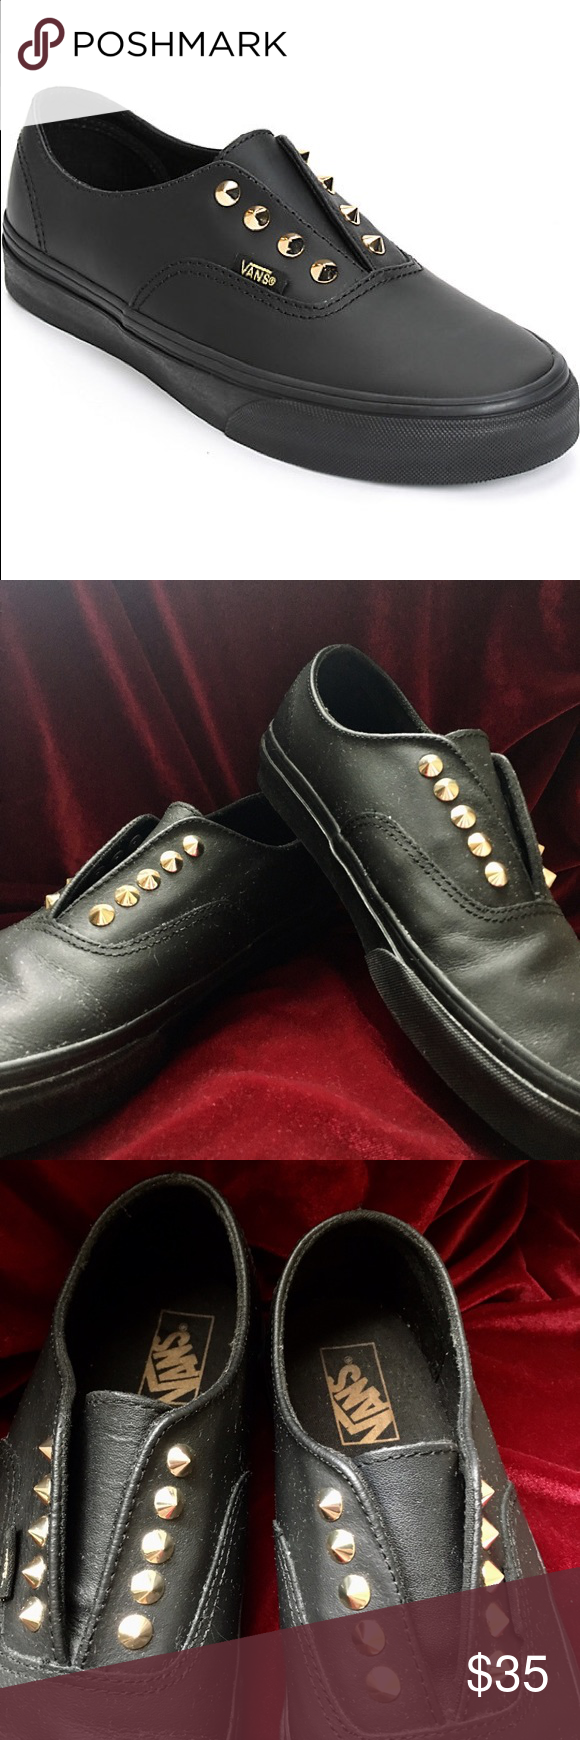 fef5a7ded4e687 ✖️Vans Authentic Gore Stud Leather Slip On Shoes These classic style slip-on  shoes